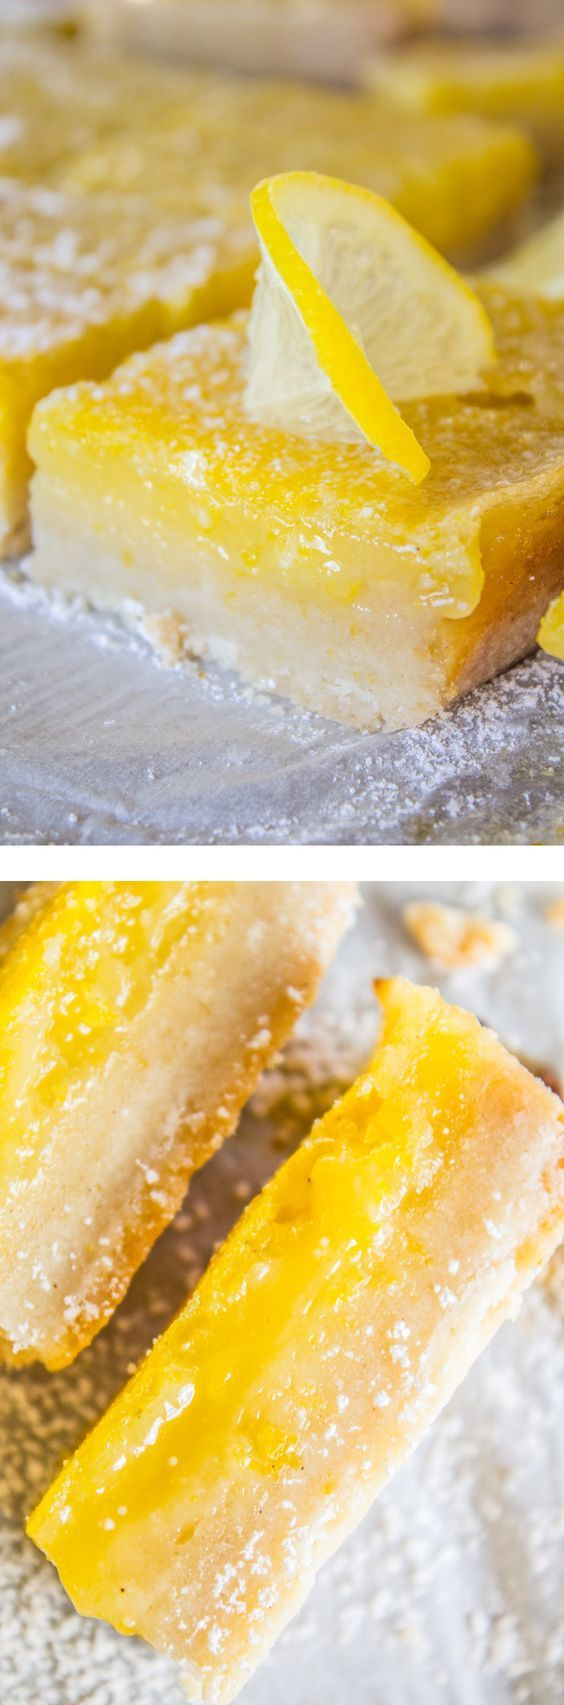 This is the BEST recipe for Lemon Bars I have EVER had! The shortbread crust is thick and tender, and the lemon custard on top is super tart and creamy. Perfect make ahead dessert. from The Food Charlatan.